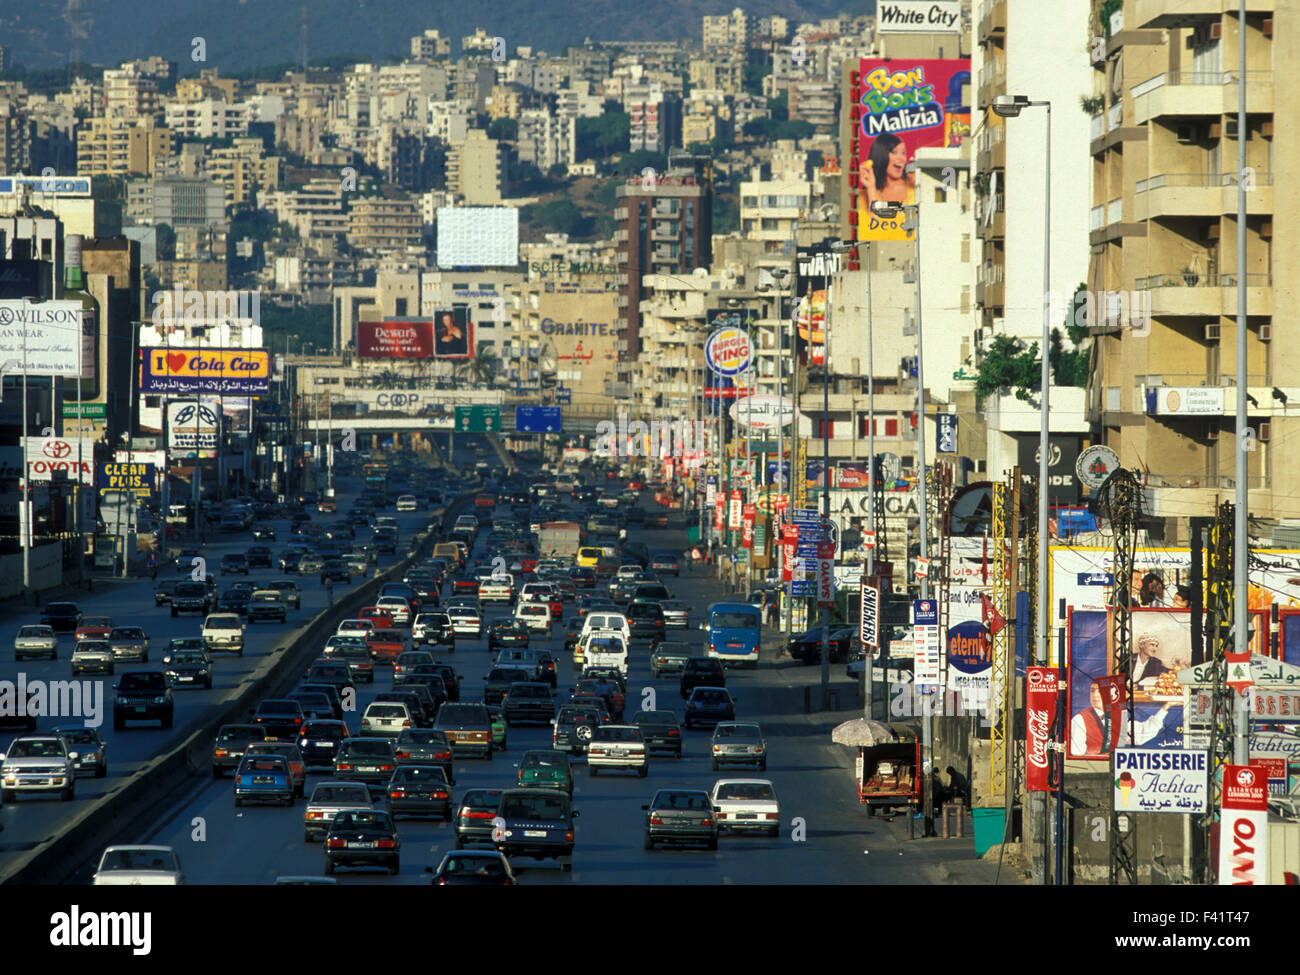 Moyen ORIENT LIBAN BEYROUTH Photo Stock